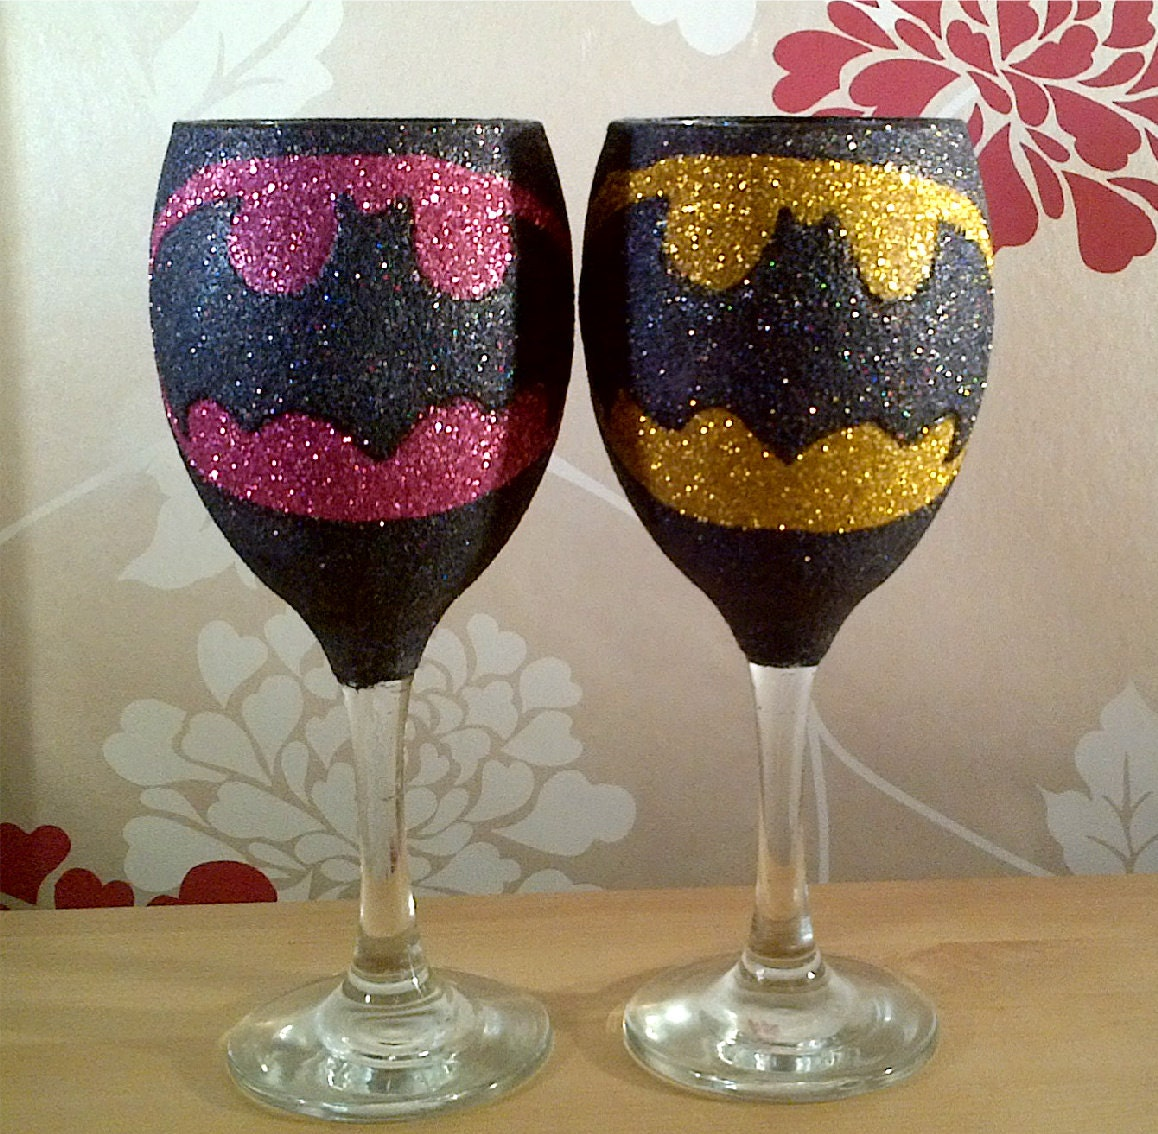 Superhero glitter wine glass glittered bling by How to make wine glasses sparkle